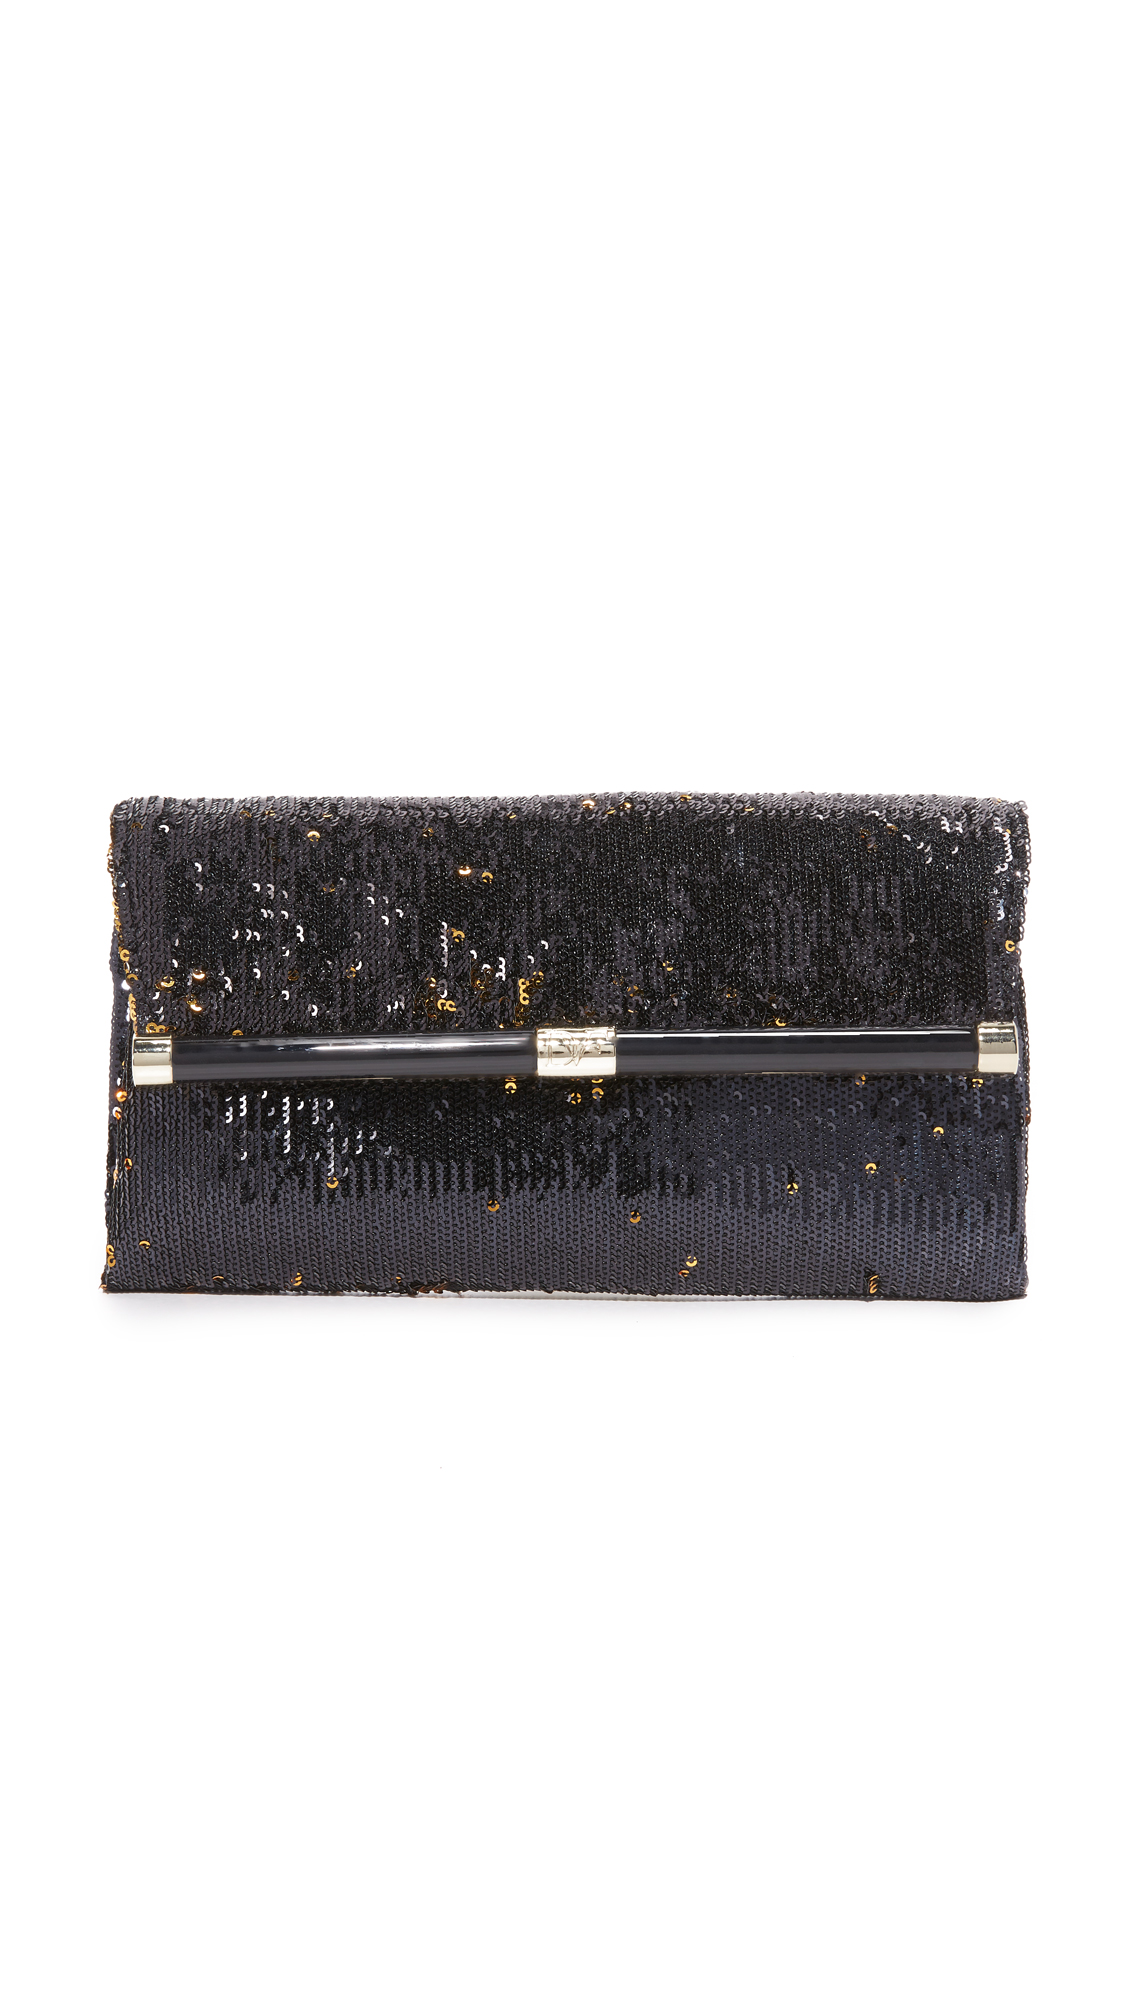 A sophisticated DVF clutch in shimmery, reversible sequins, which can shift at the touch of a hand from dark to metallic gold. Back pocket and magnetic front flap. Logo lined interior with a zip compartment. Dust